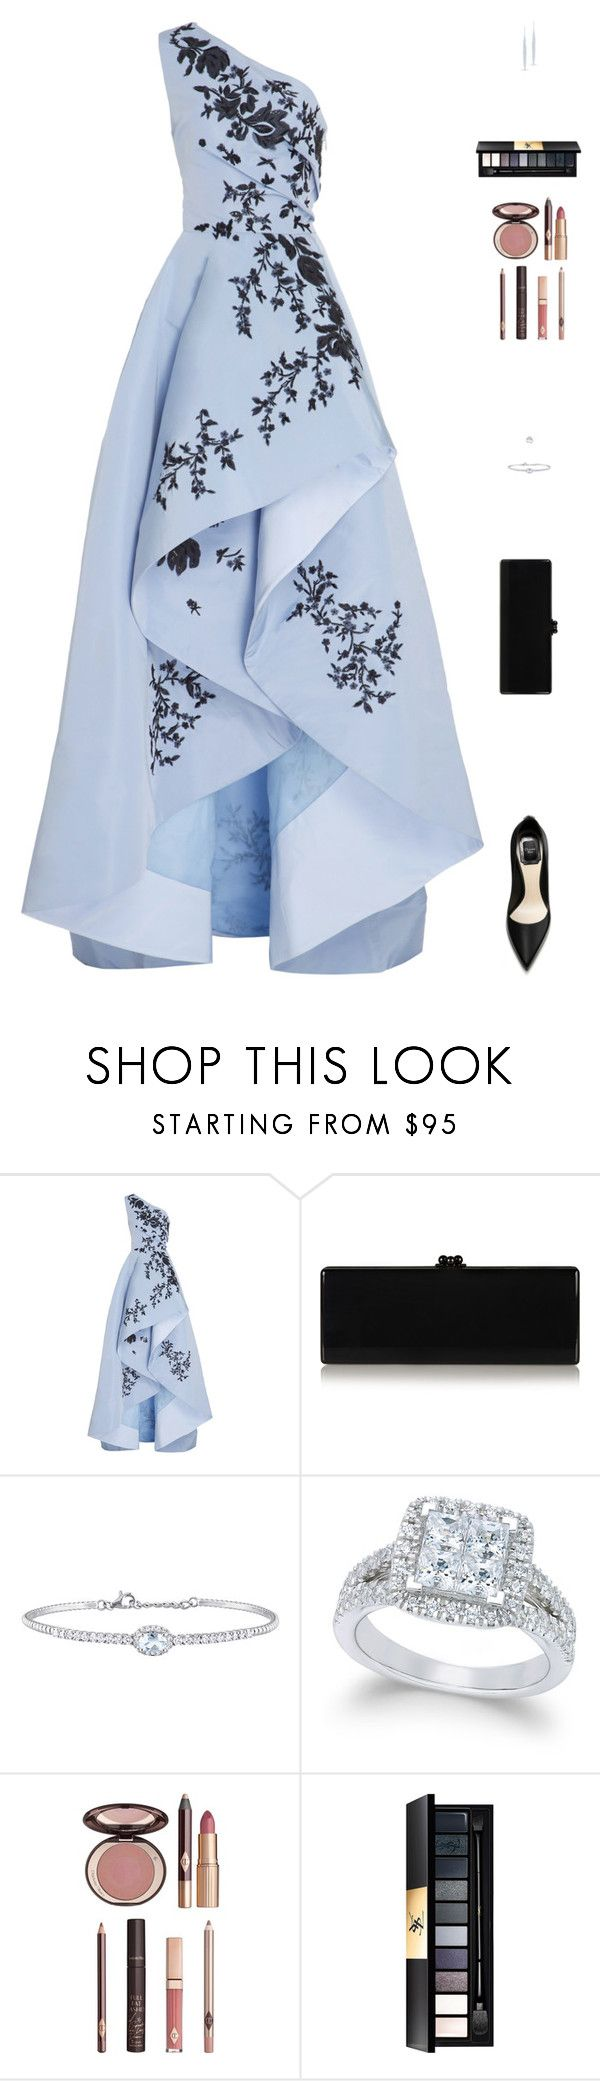 """Sin título #4865"" by mdmsb on Polyvore featuring moda, Monique Lhuillier, Edie Parker, Rina Limor, Charlotte Tilbury y Yves Saint Laurent"